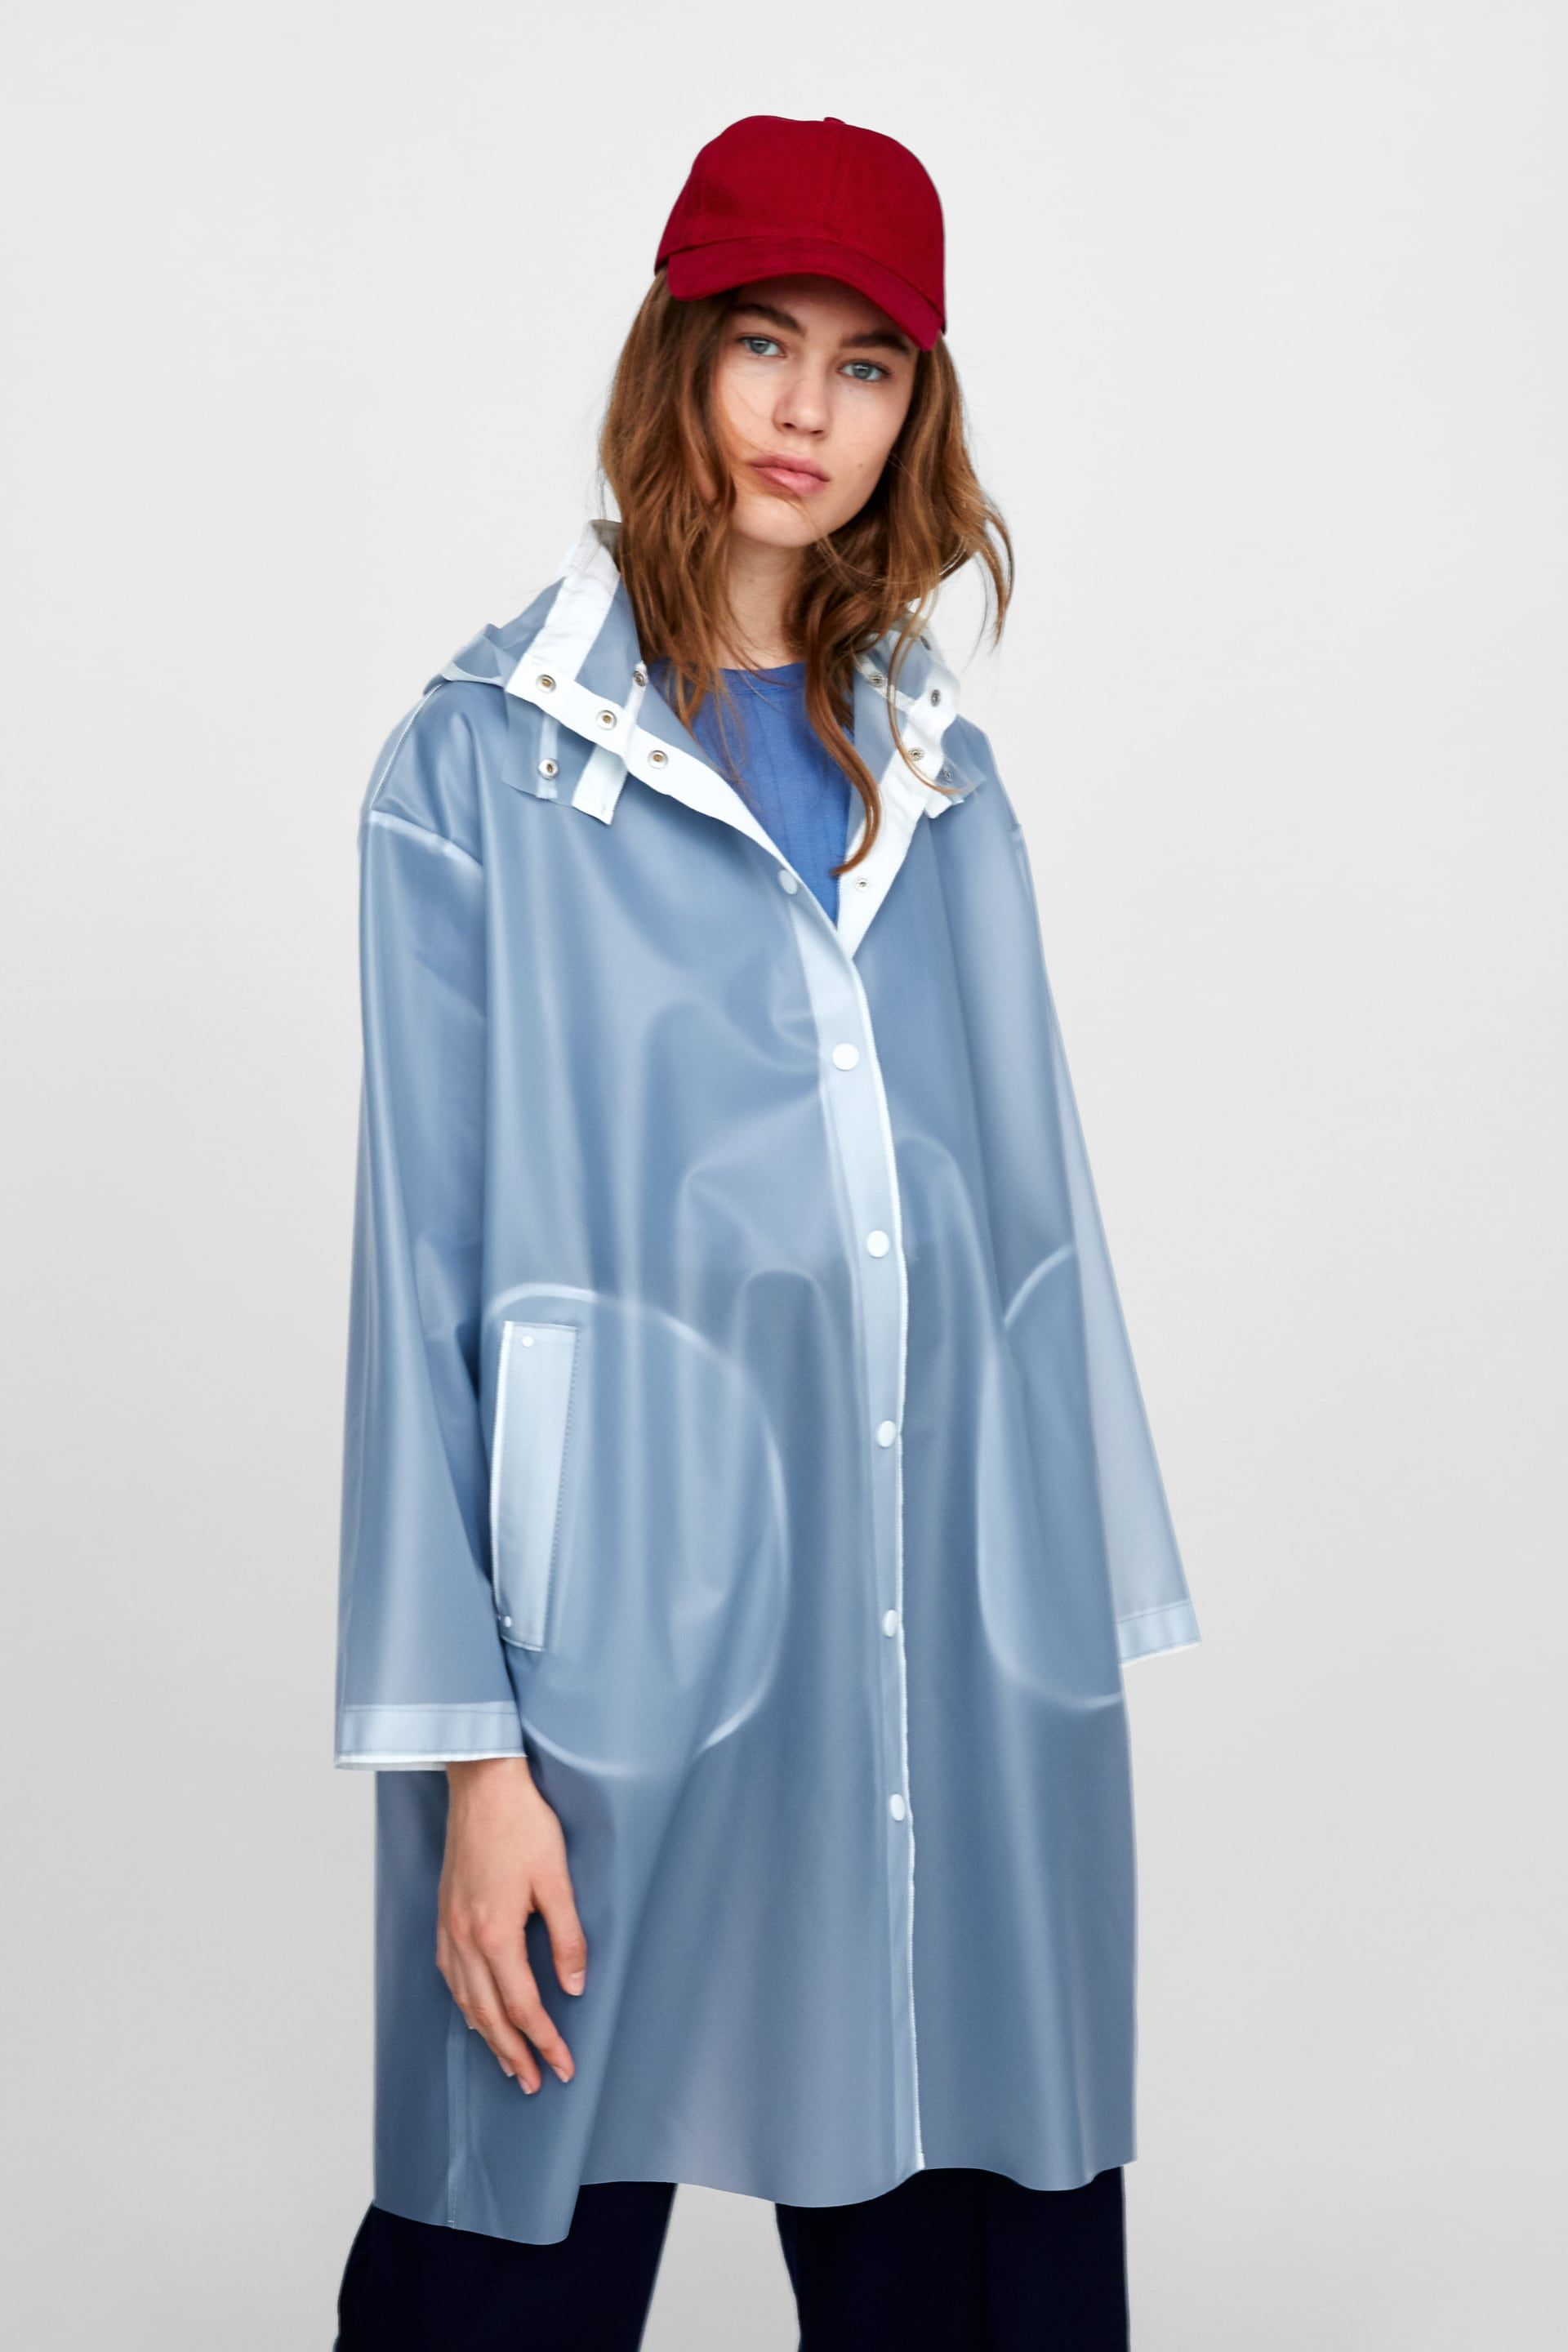 low price Buy Authentic authorized site Image 2 of TRANSPARENT RAINCOAT from Zara | Women's fashion ...